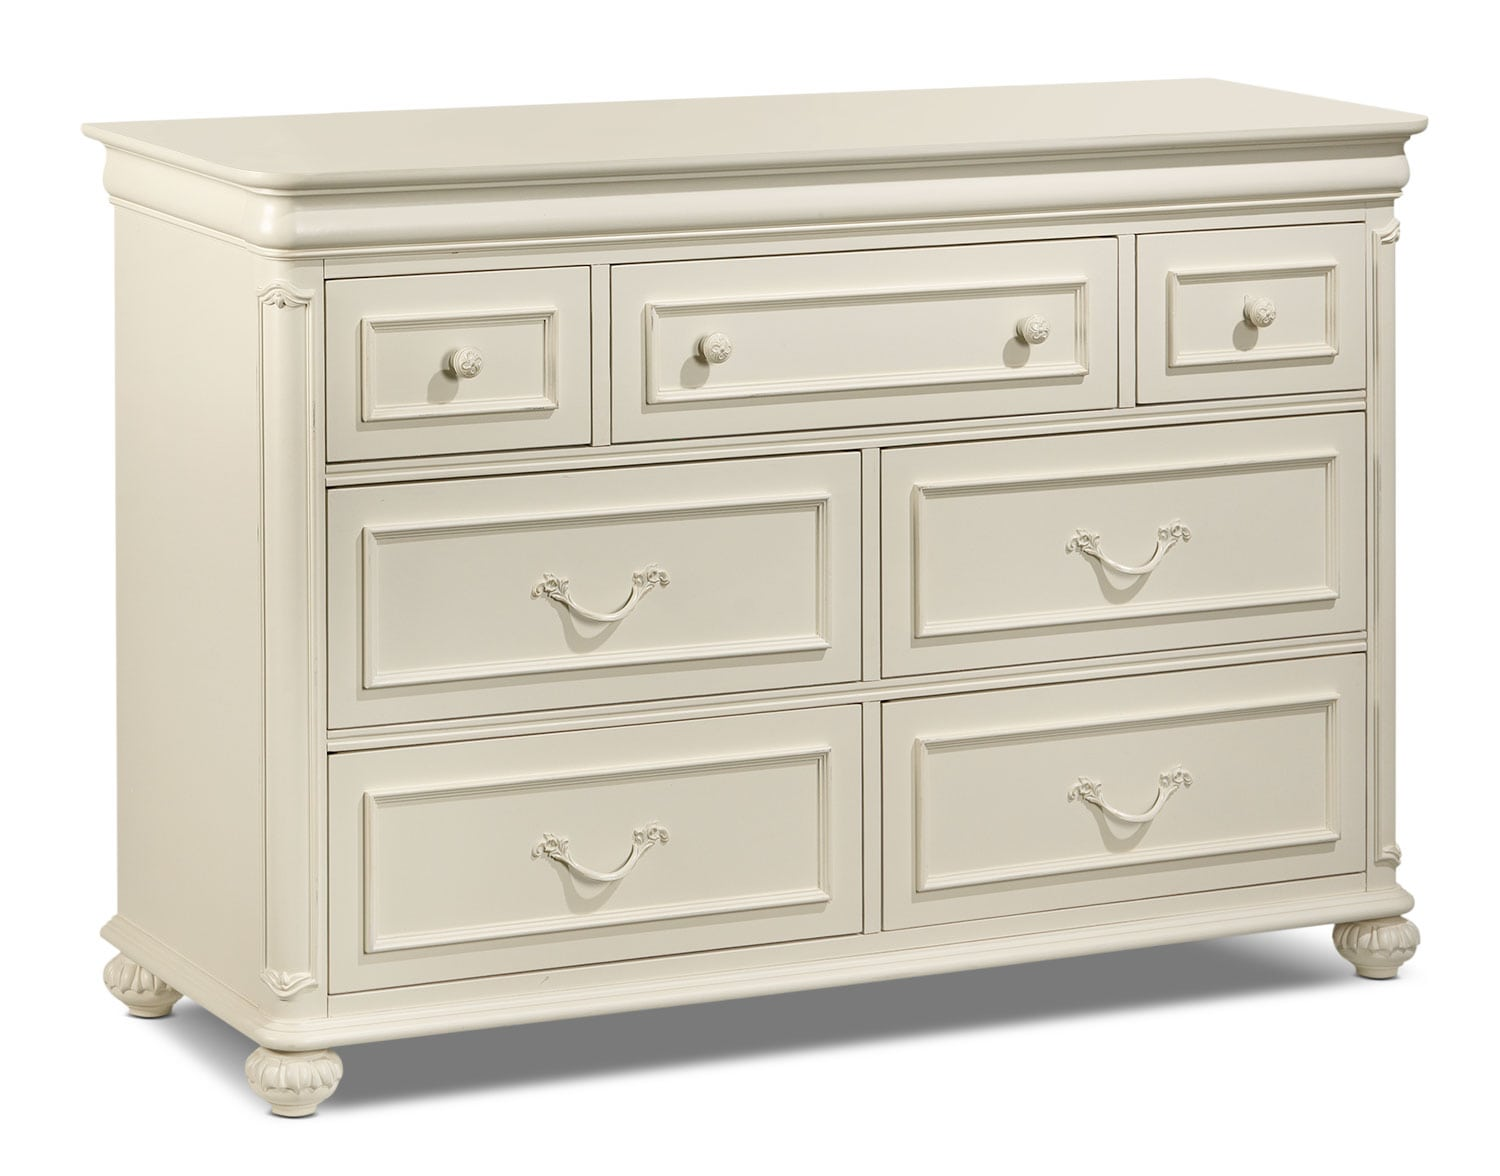 Bedroom Furniture - Amber Dresser - Antique White